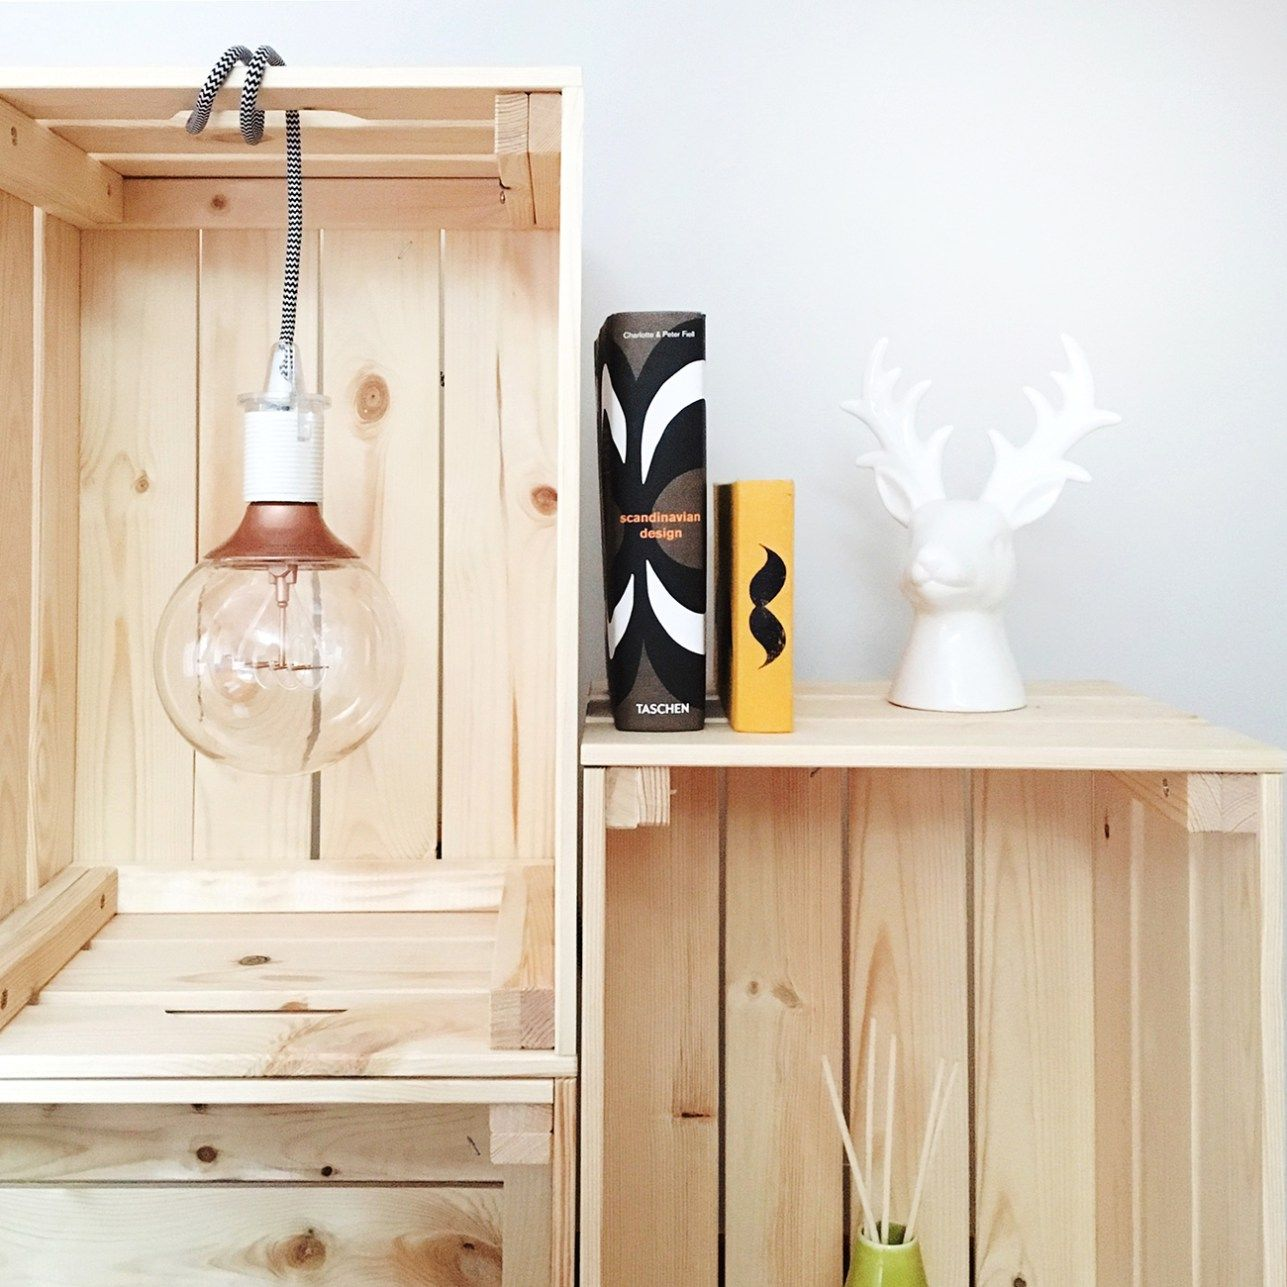 A Fun Little Easy Diy Project To Make Custom Storage Solution With Hanging Light Bulb